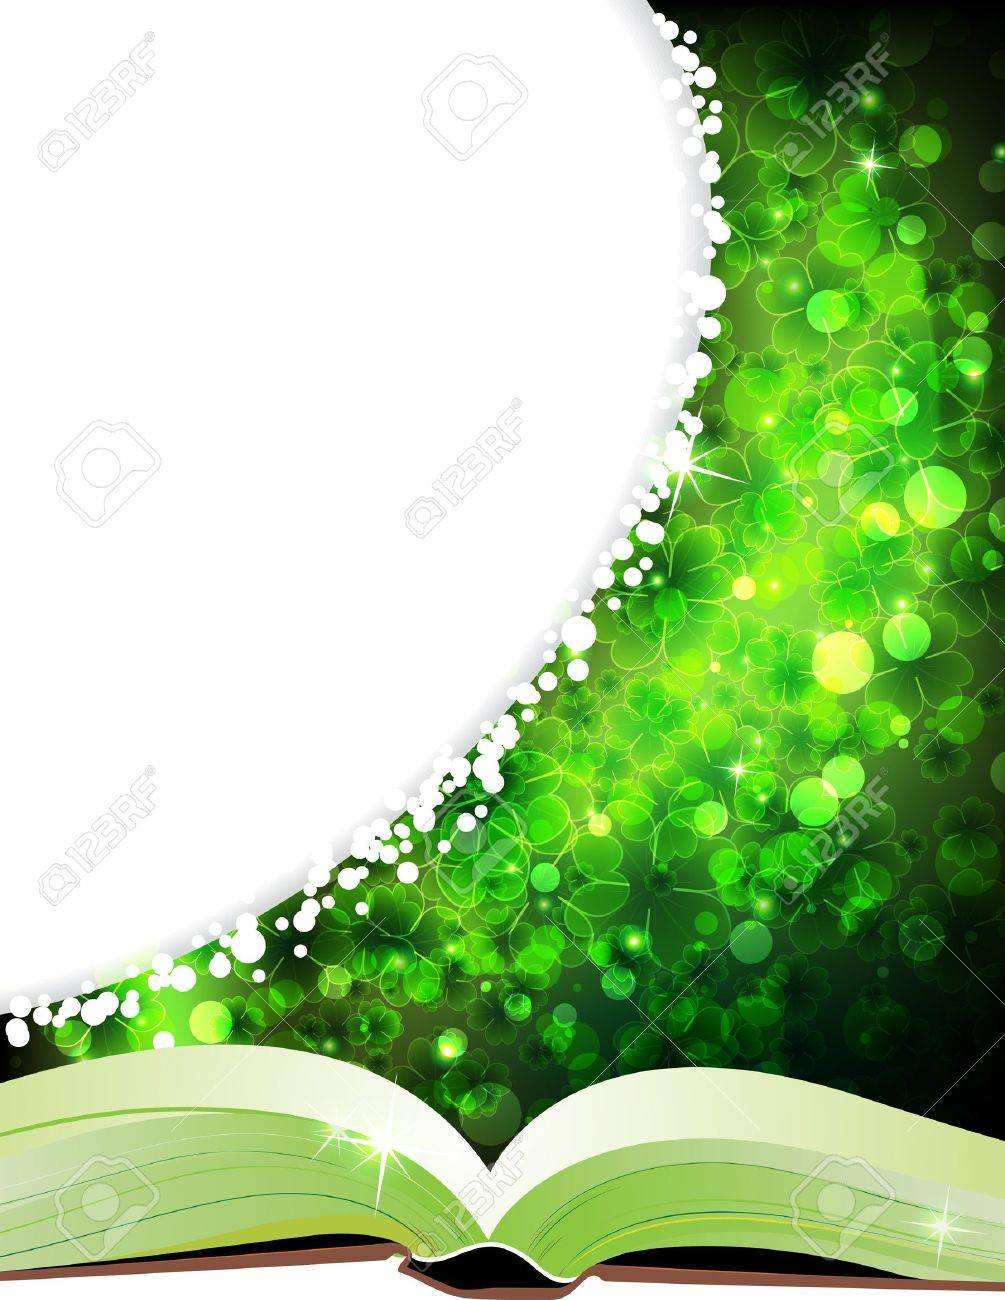 Fairy tales book on a magic four-leaf clover background - 12828605